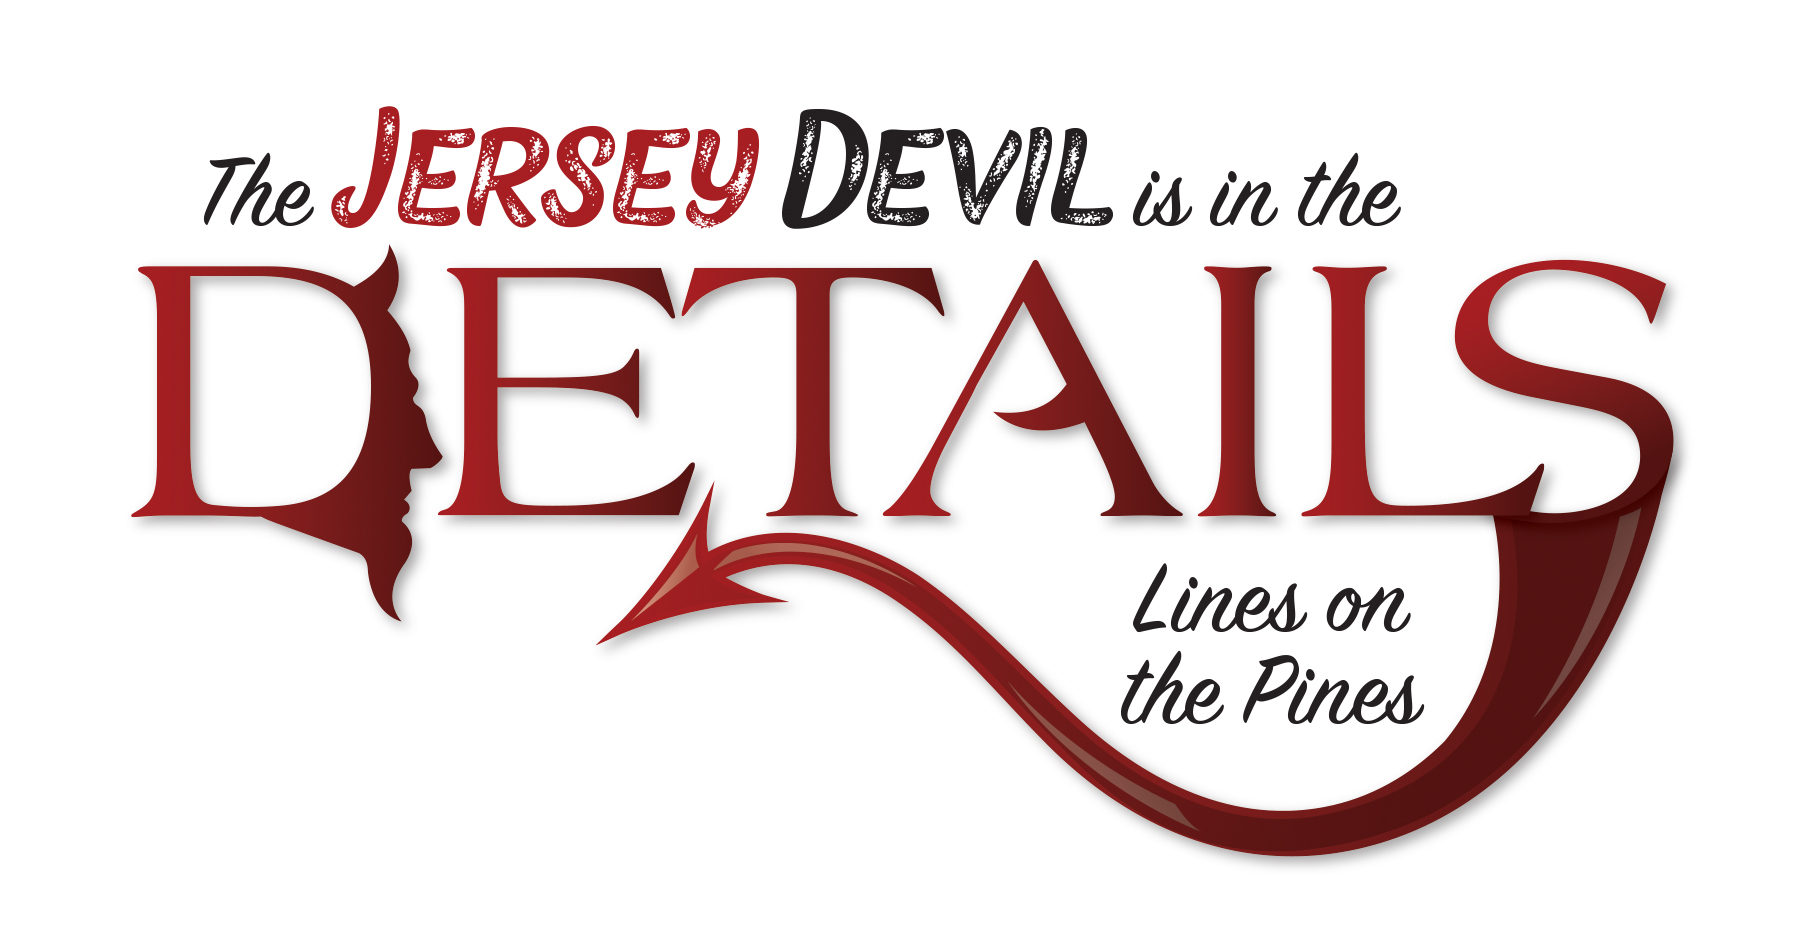 the devil restaurant essay Essay — from the september 2013 issue the devil's bait symptoms, signs, and the riddle of morgellons by leslie jamison.